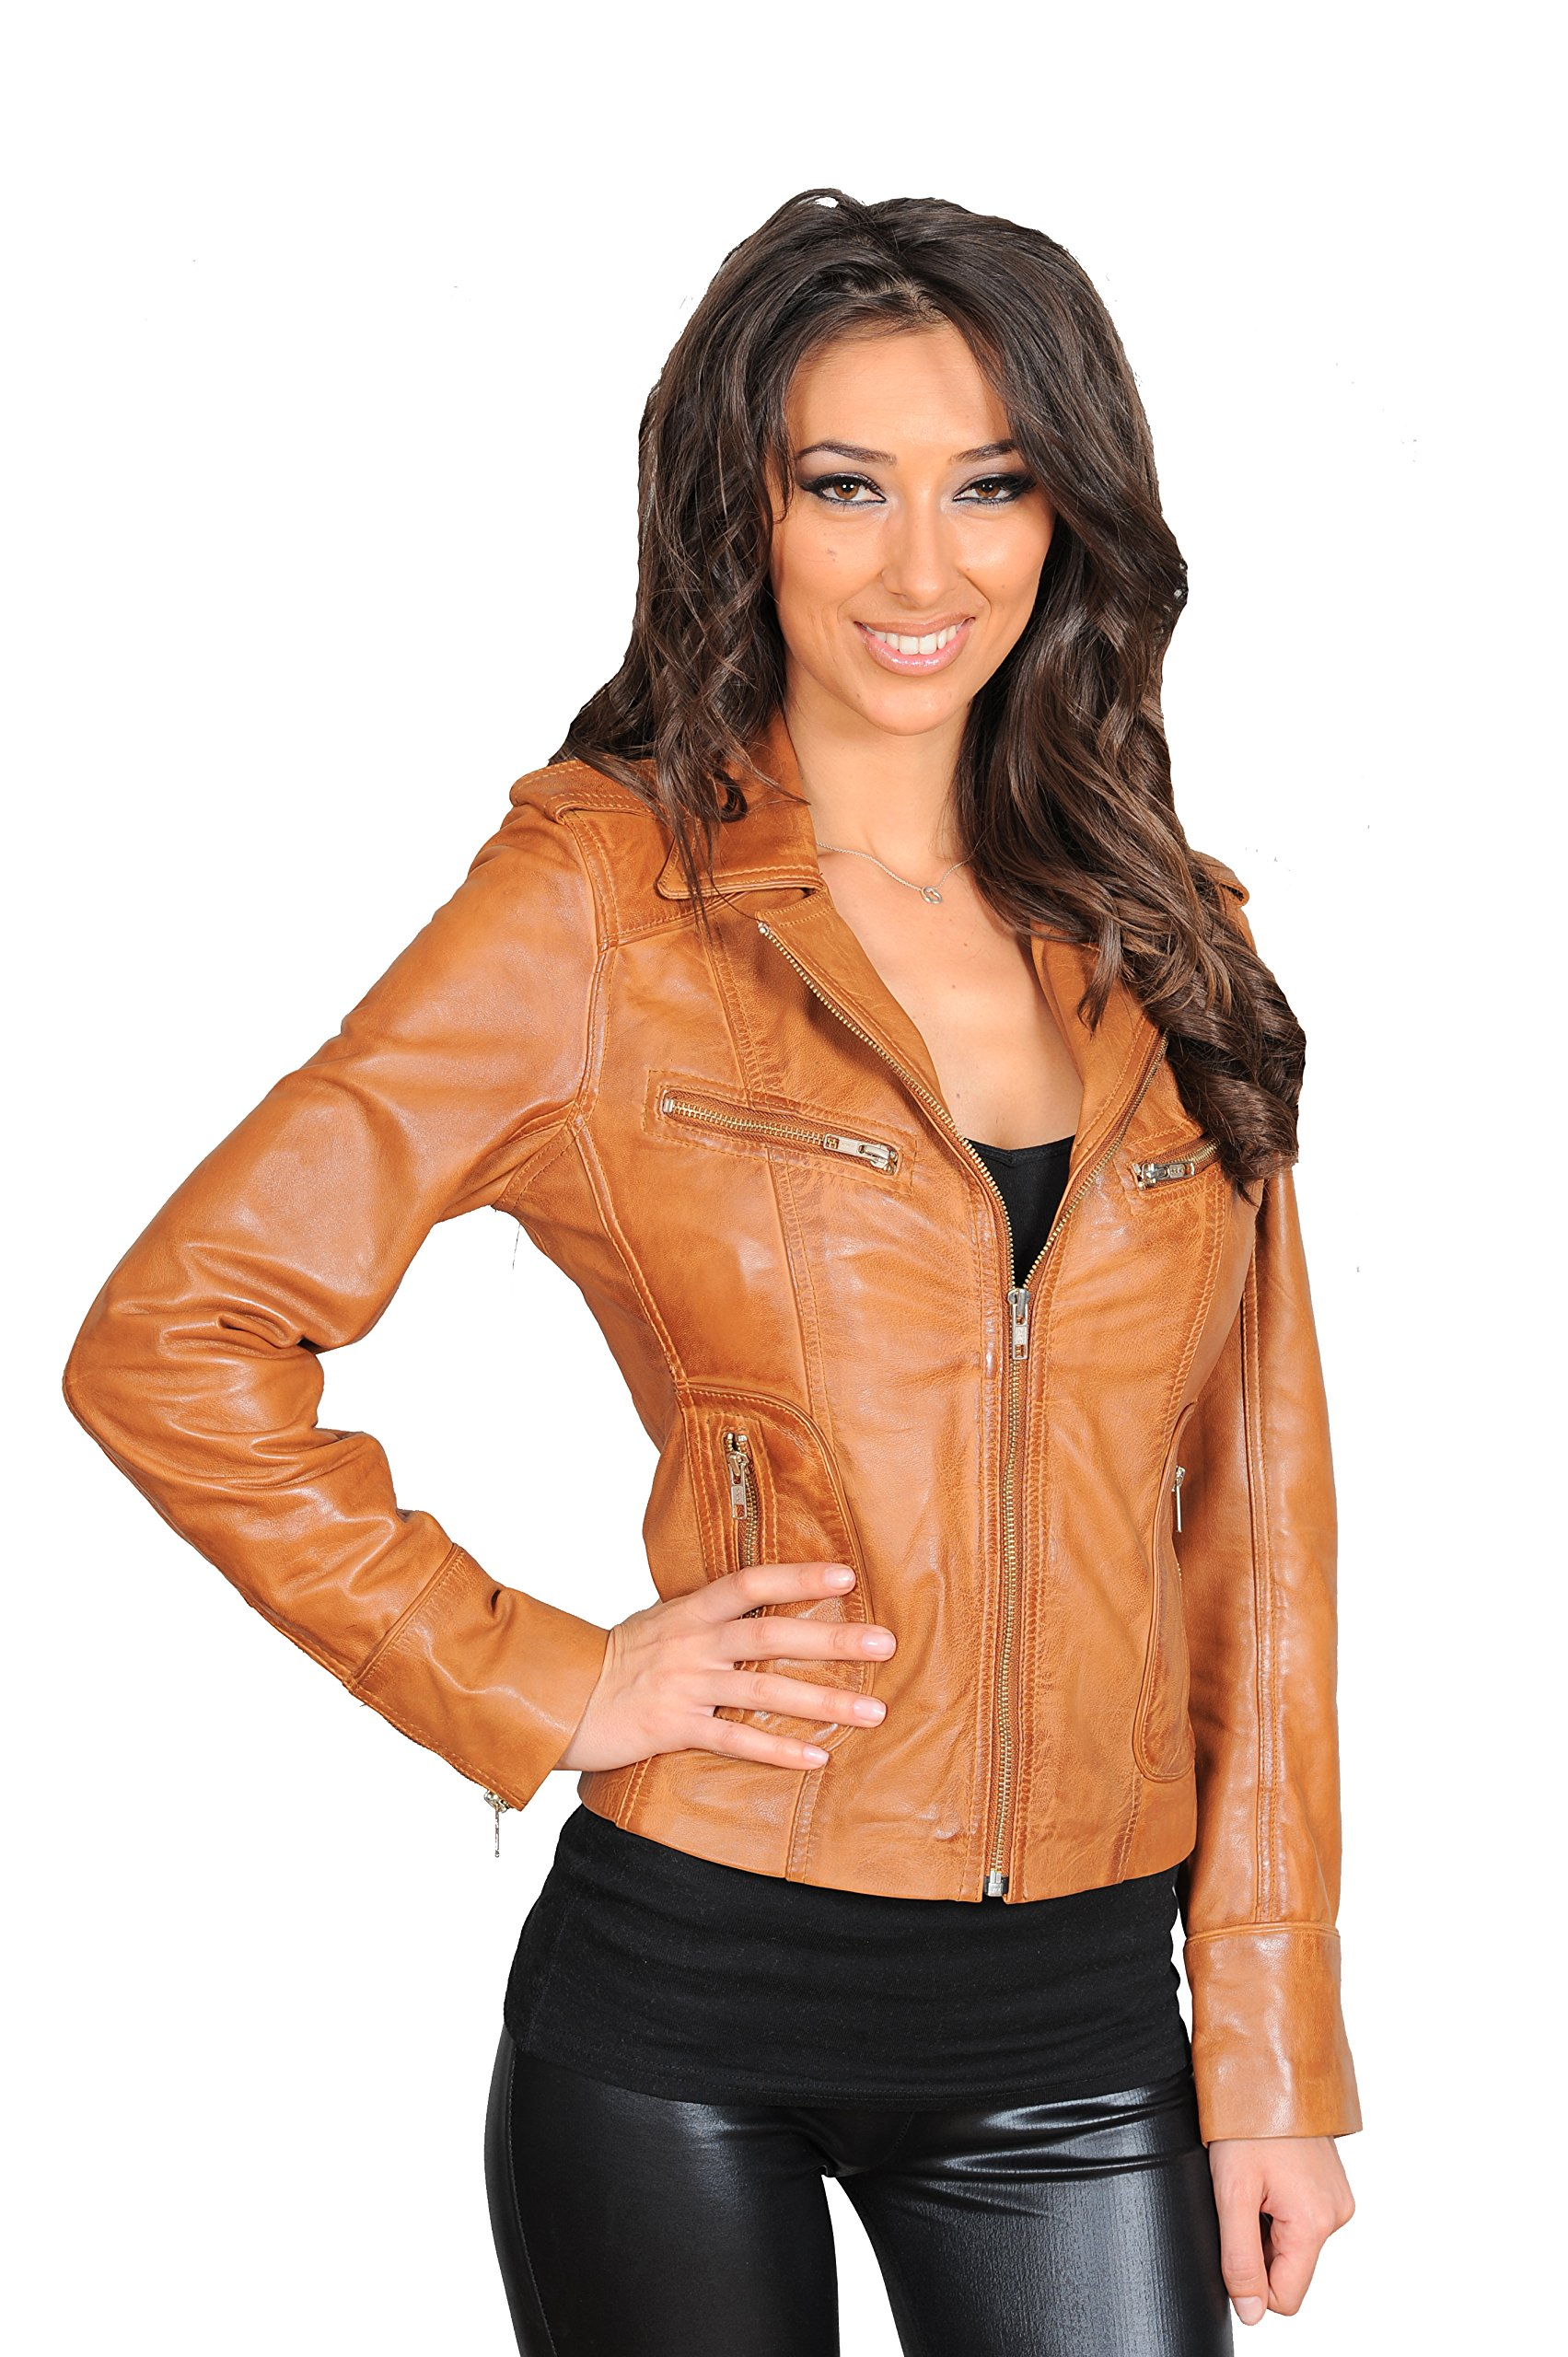 Womens Slim fit Tan Real Leather Jacket Biker Style Zip Coat Betty (Medium) by A1 FASHION GOODS